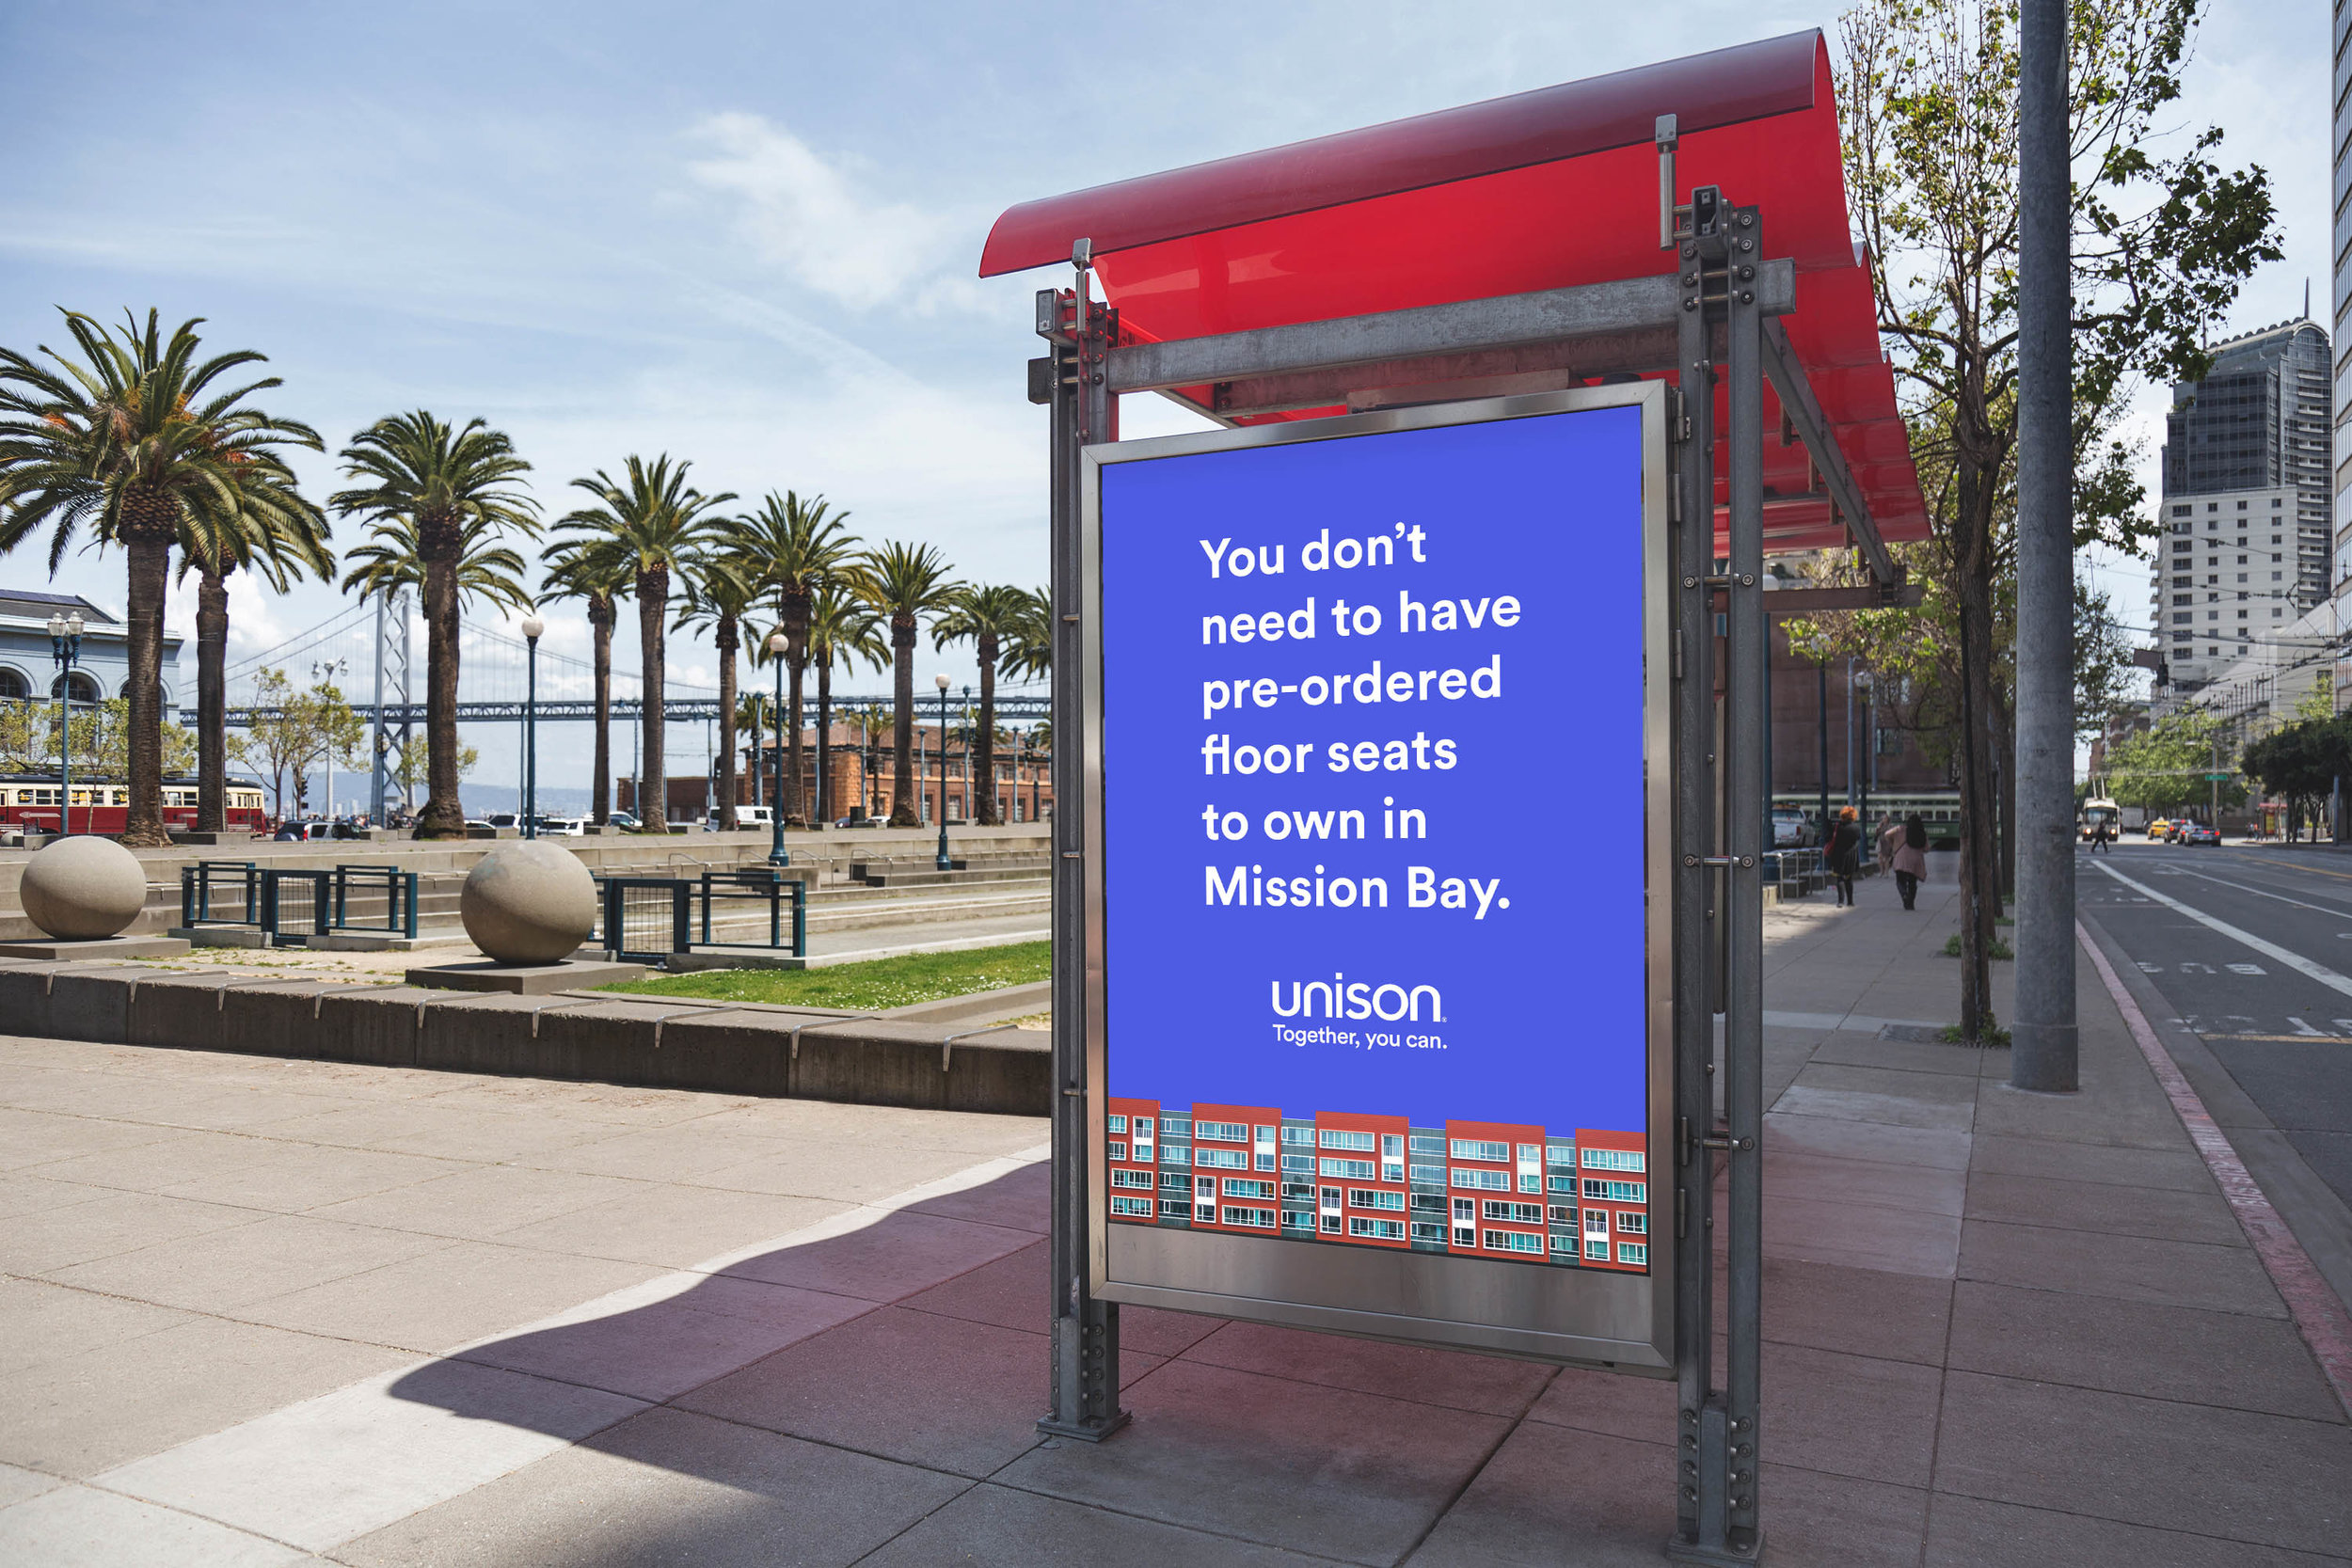 unison_floor_seats_Bus_Shelter_InSitu4.jpg